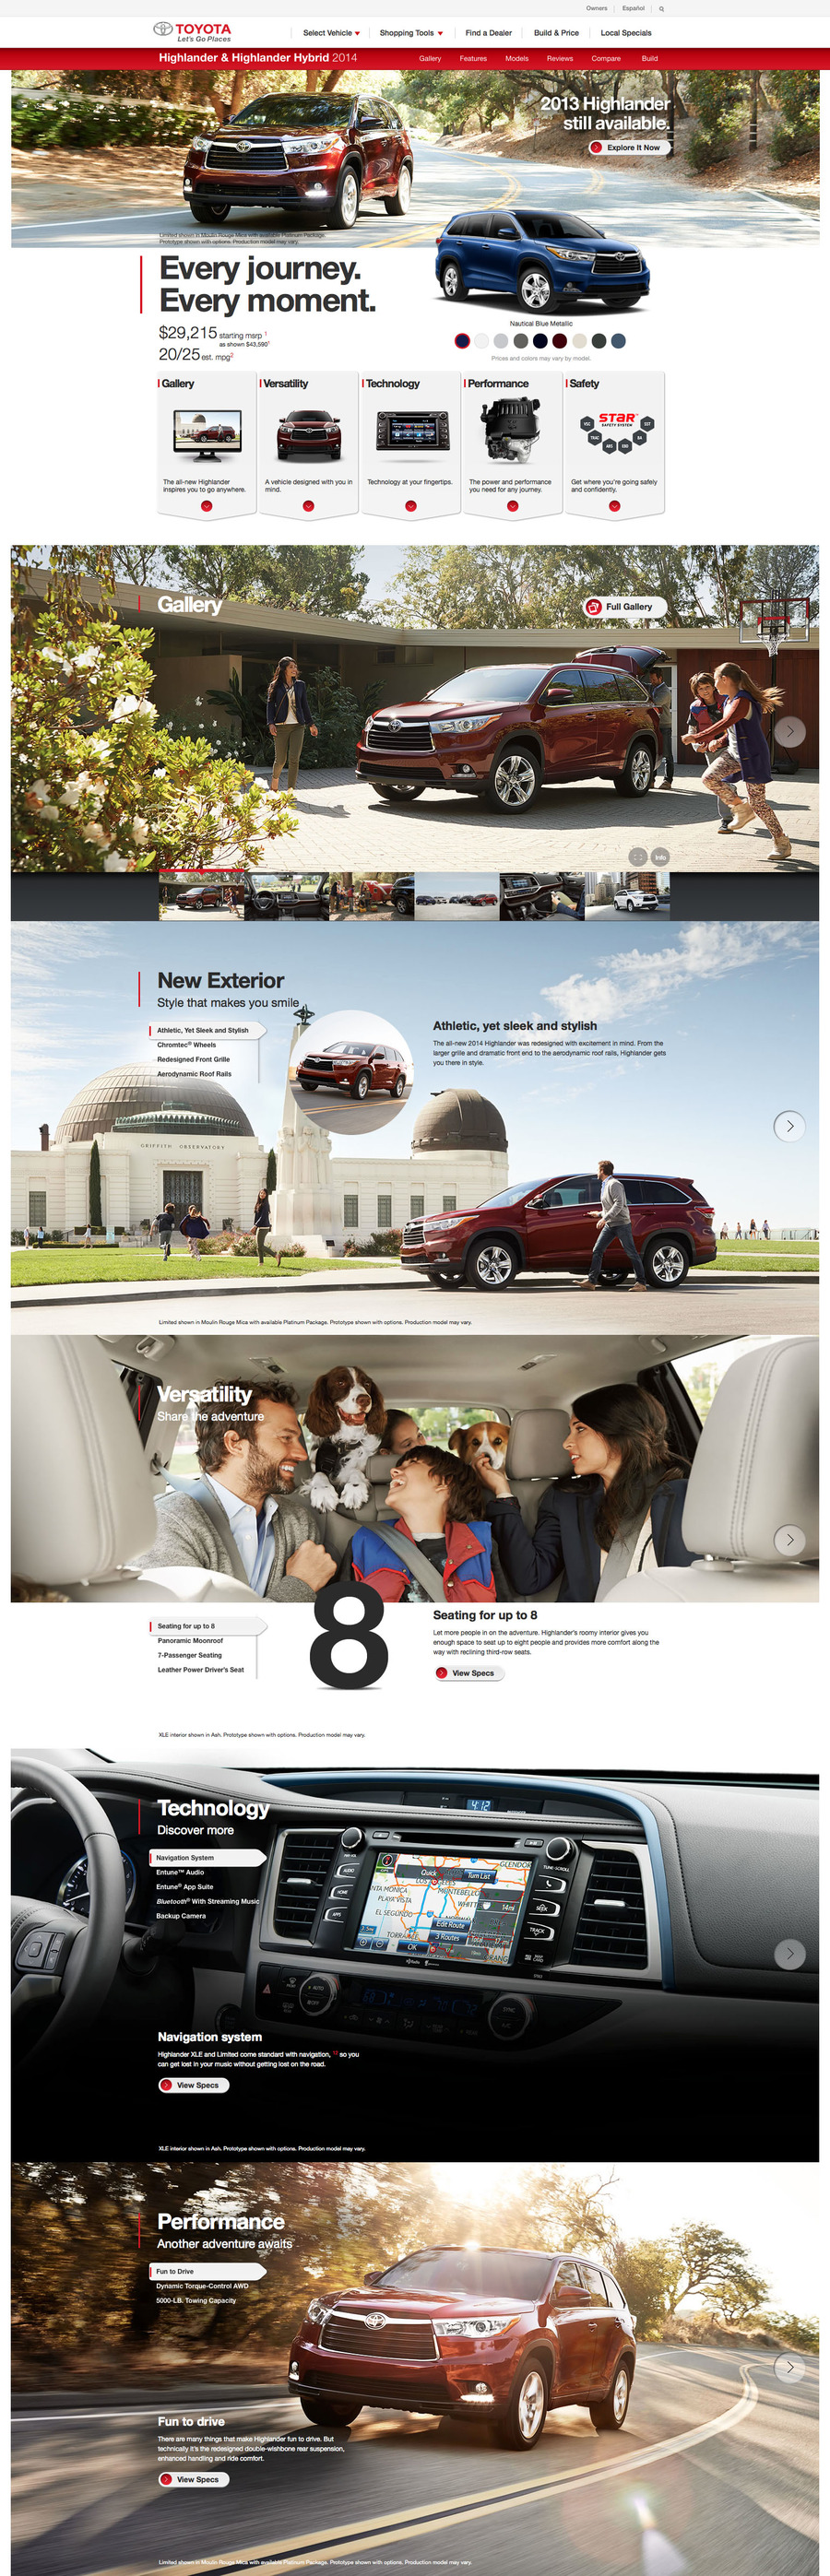 2014 Toyota Highlander - Scott Pargett #webdesign #website #inspiration